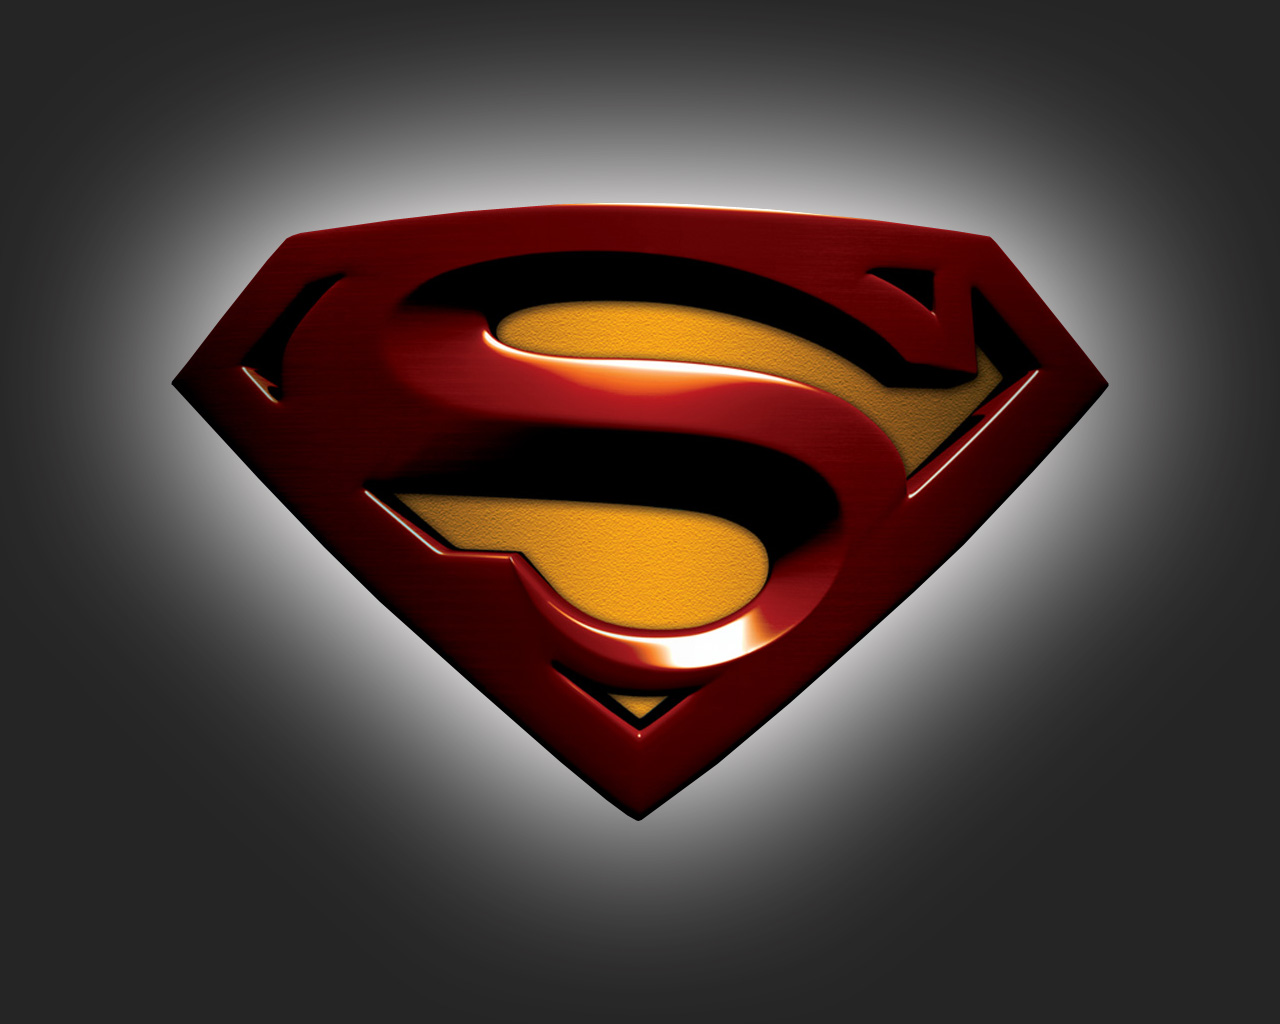 superman wallpaper hd waka 2 1280x1024